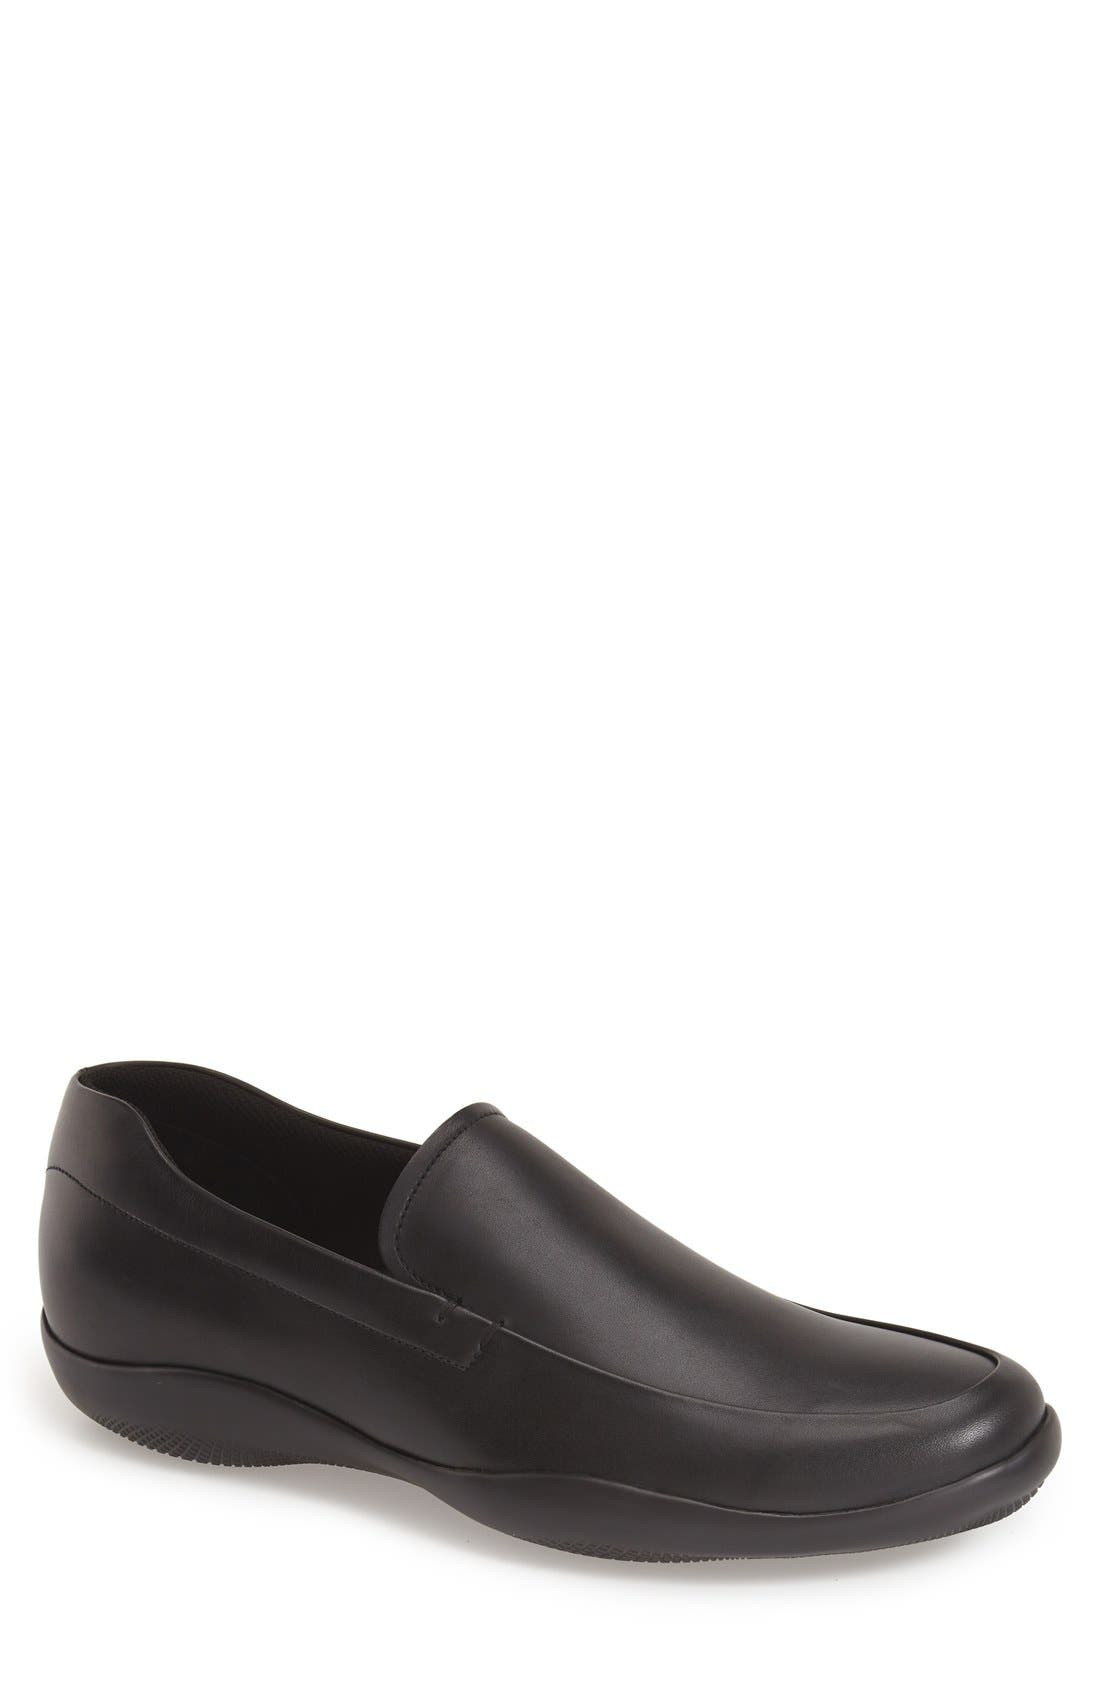 'New Toblak' Venetian Loafer, Main, color, 001